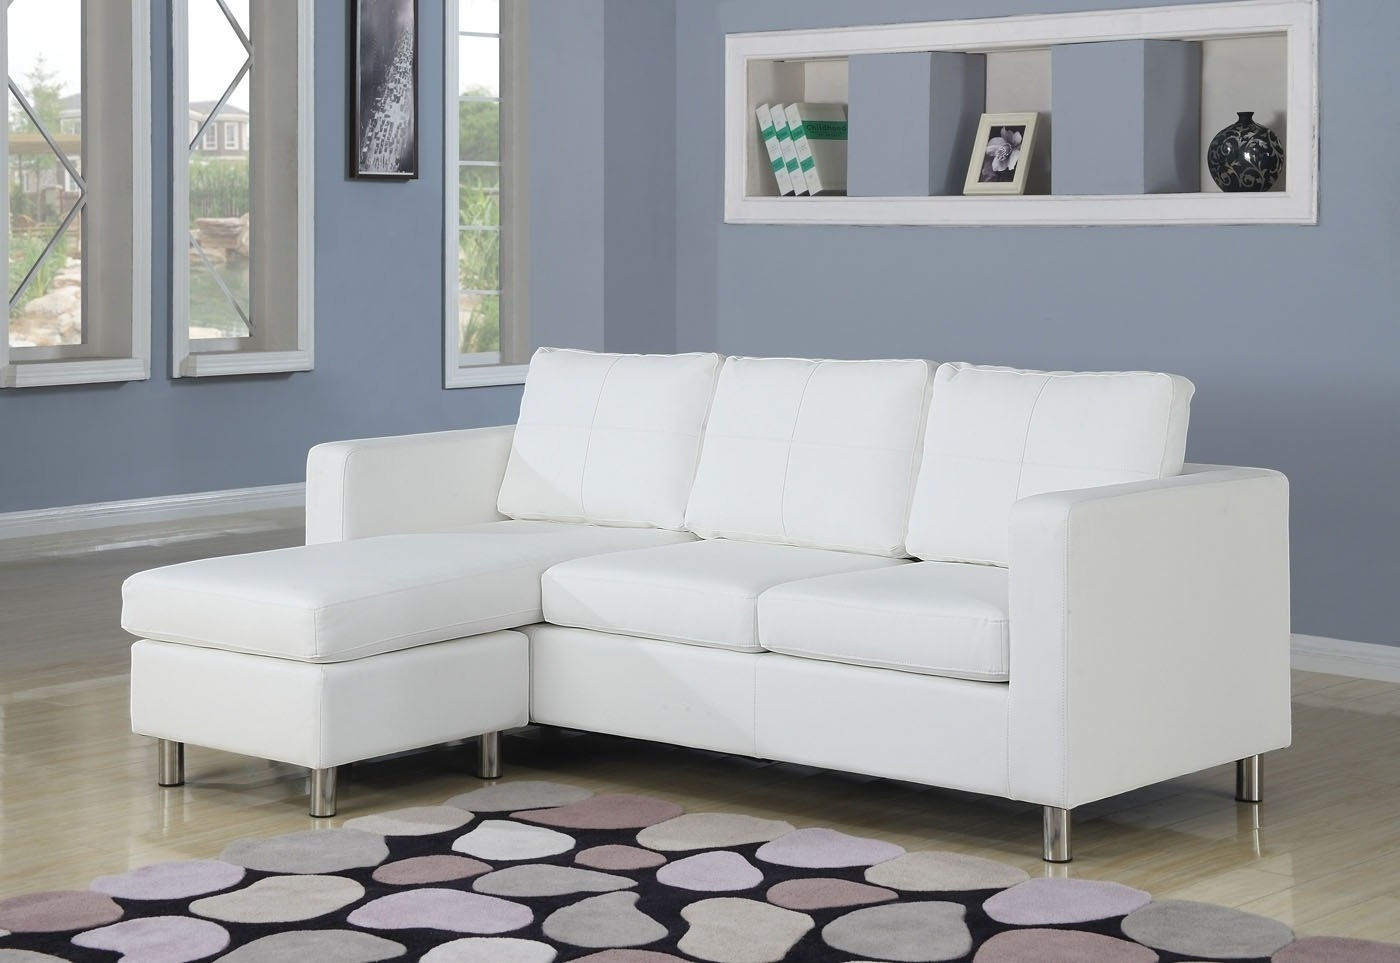 2018 L White Leather Sectional Sofa With Chaise And Back Also Arms On Pertaining To White Leather Sectionals With Chaise (View 9 of 15)